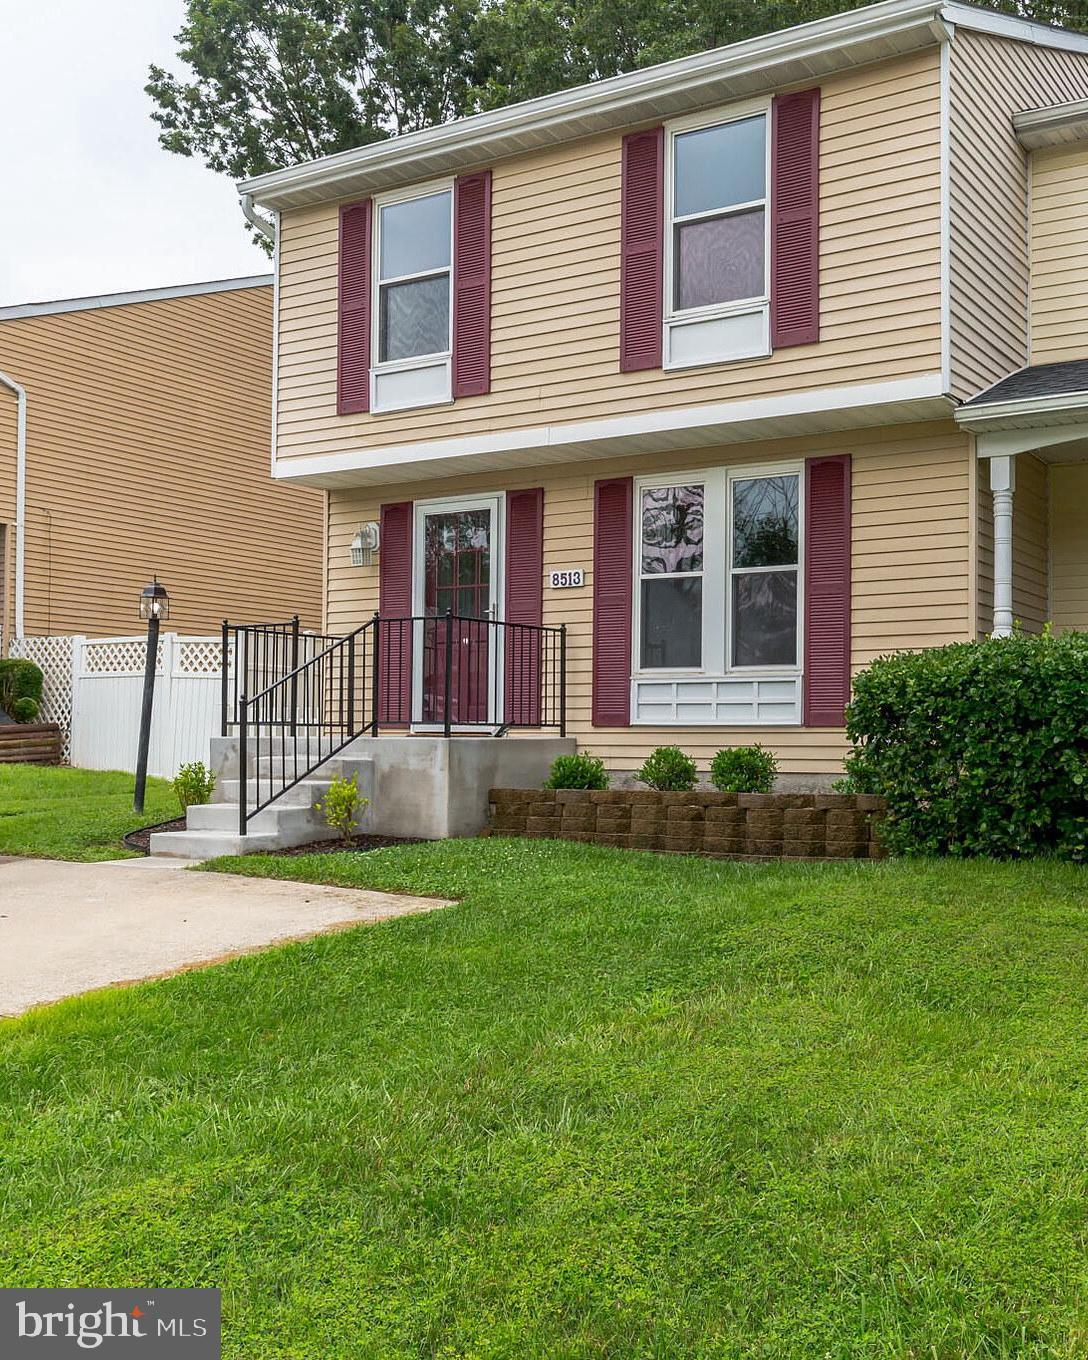 INVITING END OF GROUP TOWNHOME (SEMI-DETACHED) LOCATED IN PRIVATE CUL-DE-SAC SETTING BACKING TO TREE